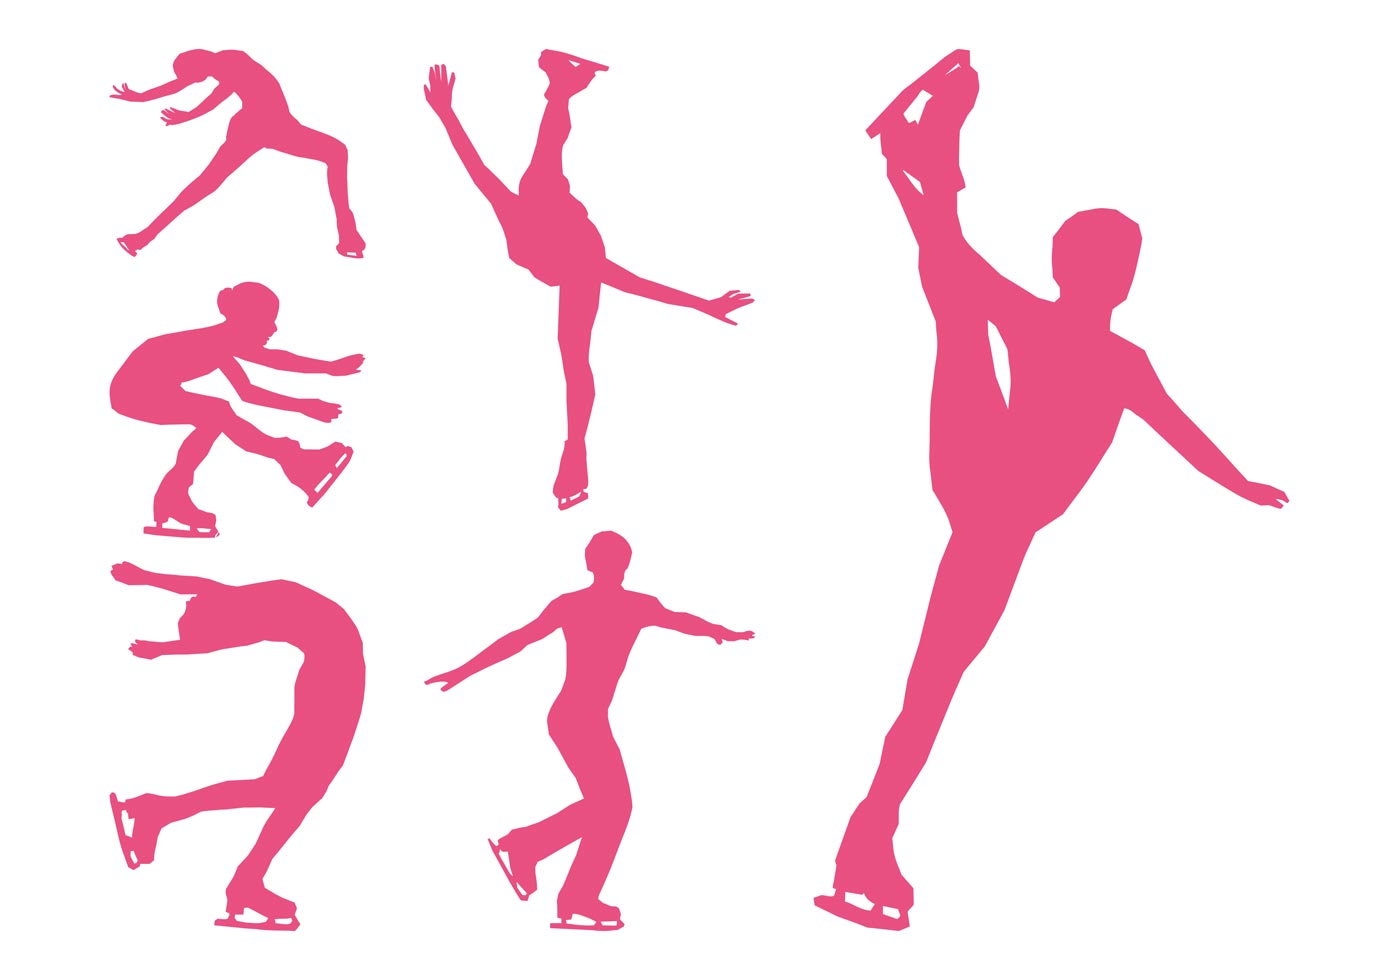 Dynamic Sports Figures Silhouette: Figure Skaters Silhouettes Set